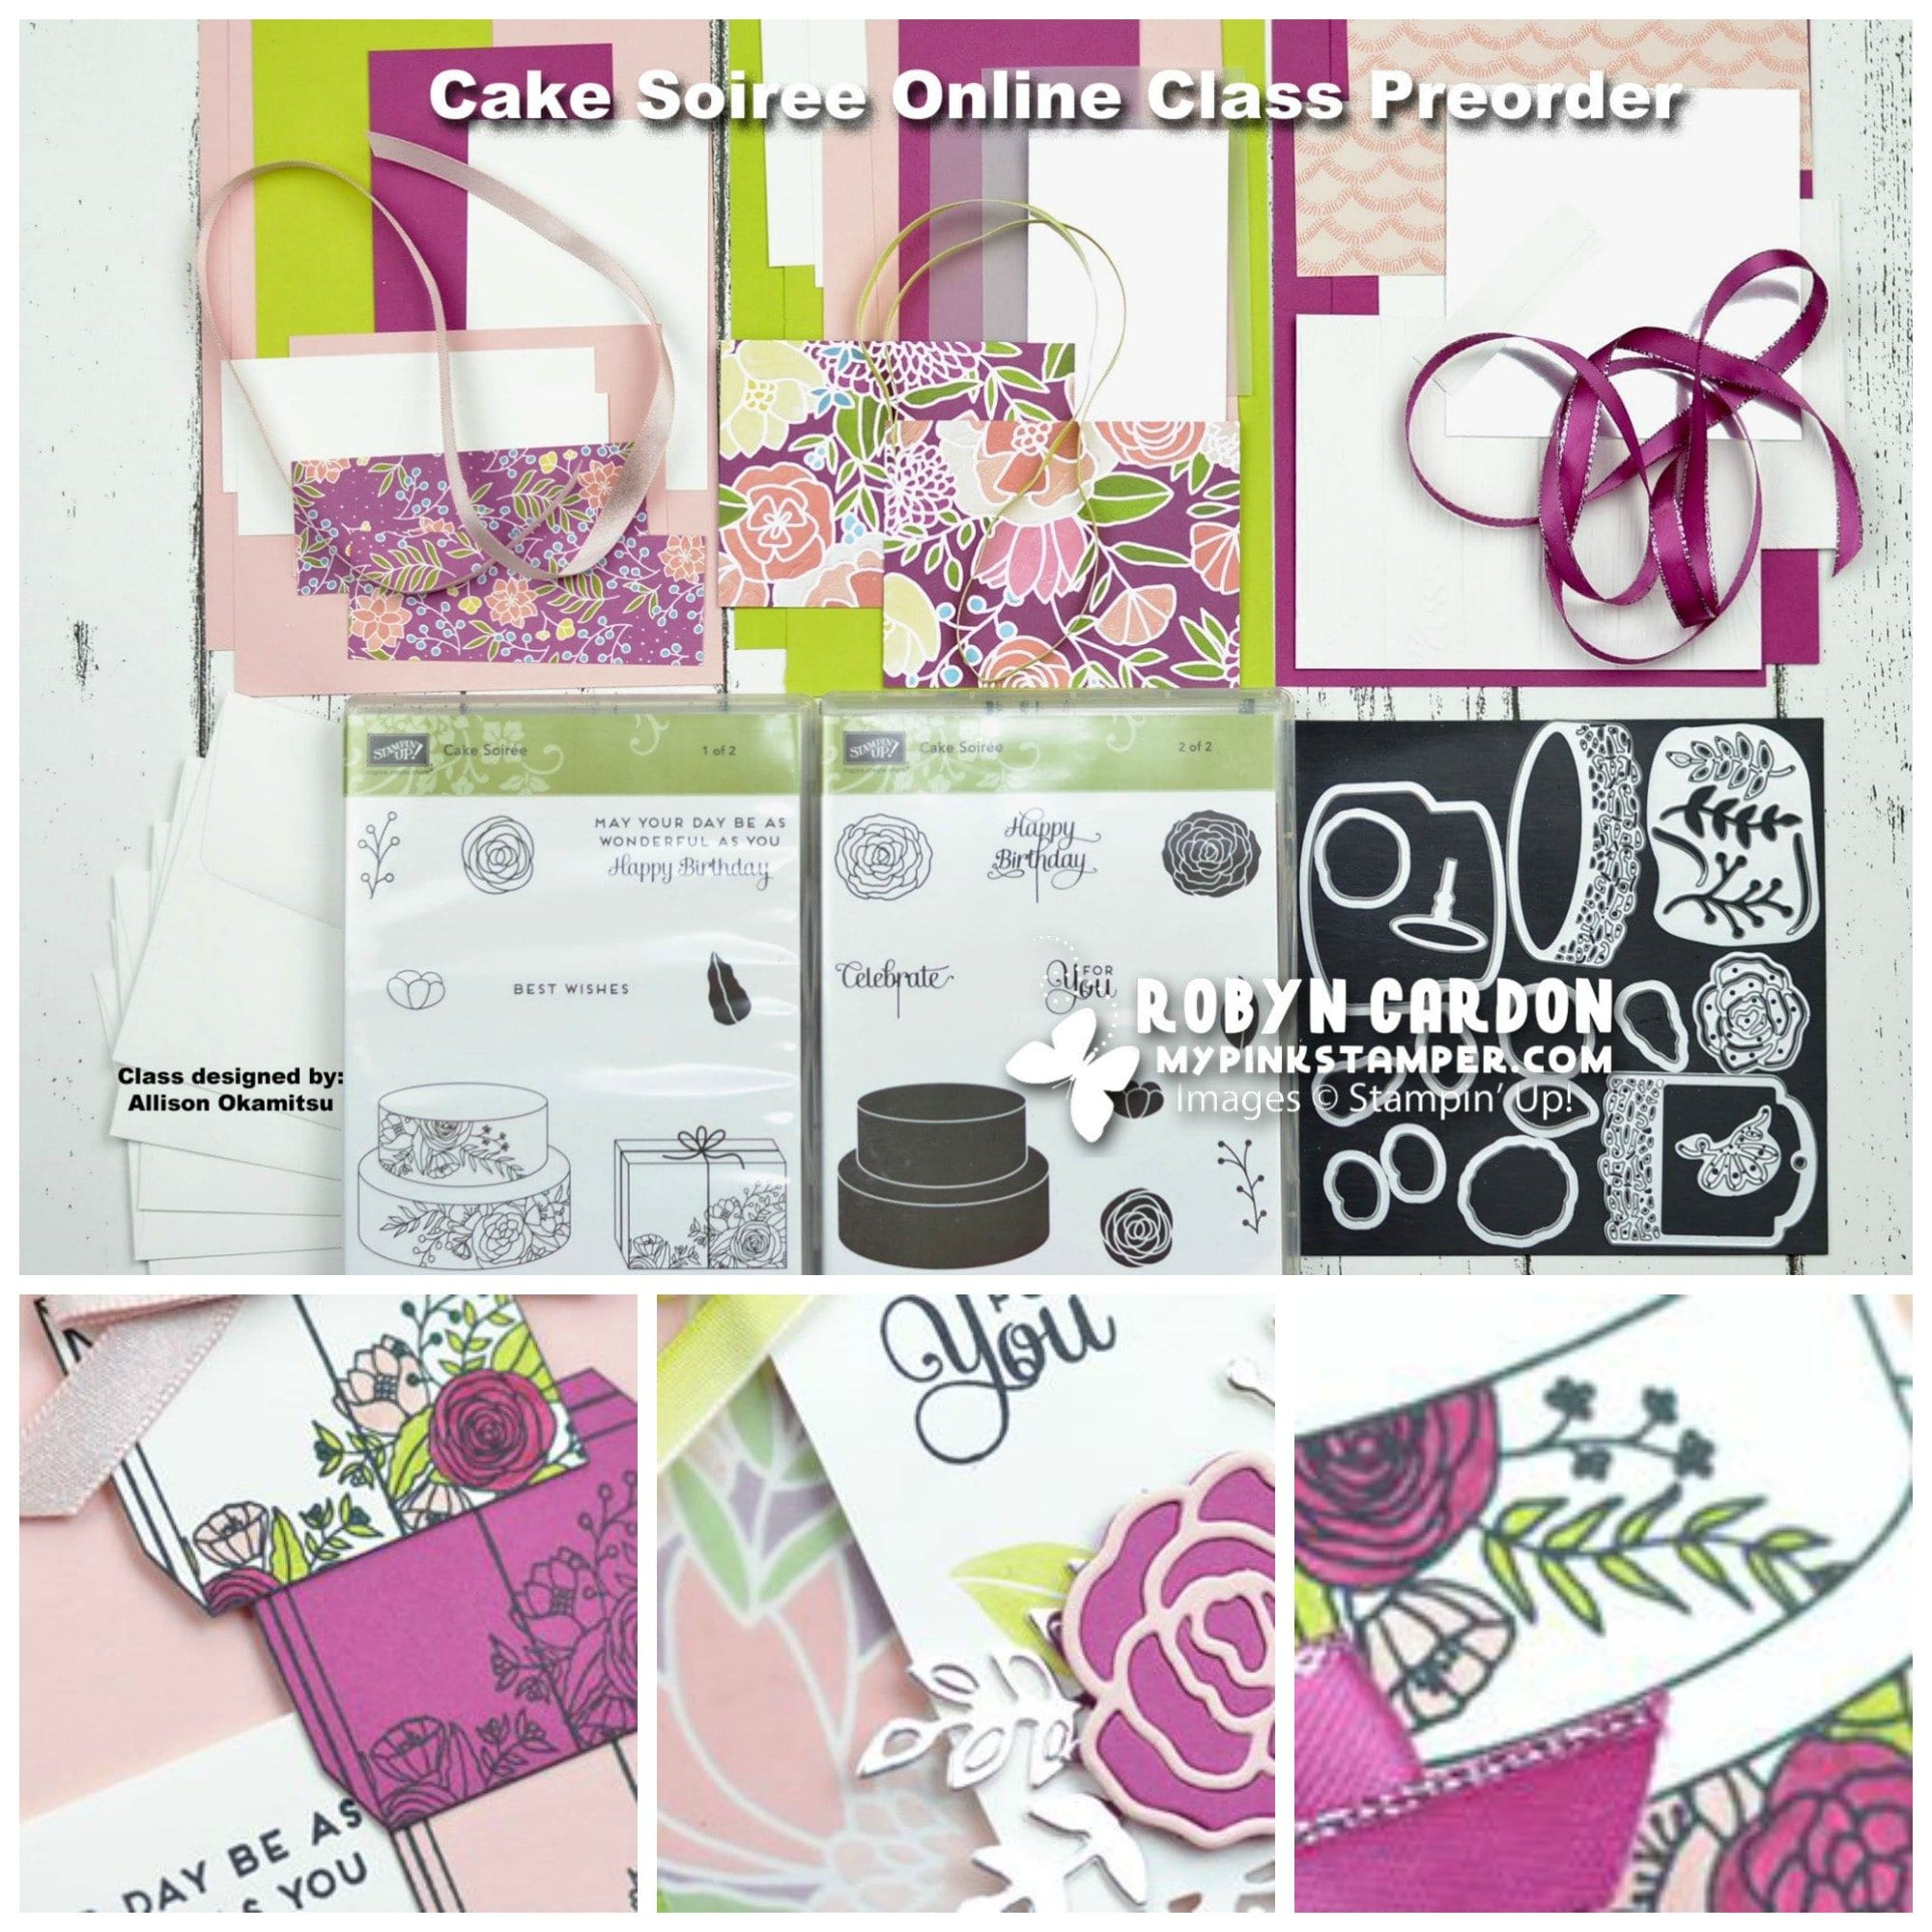 Cake Soiree Online Class Preorder